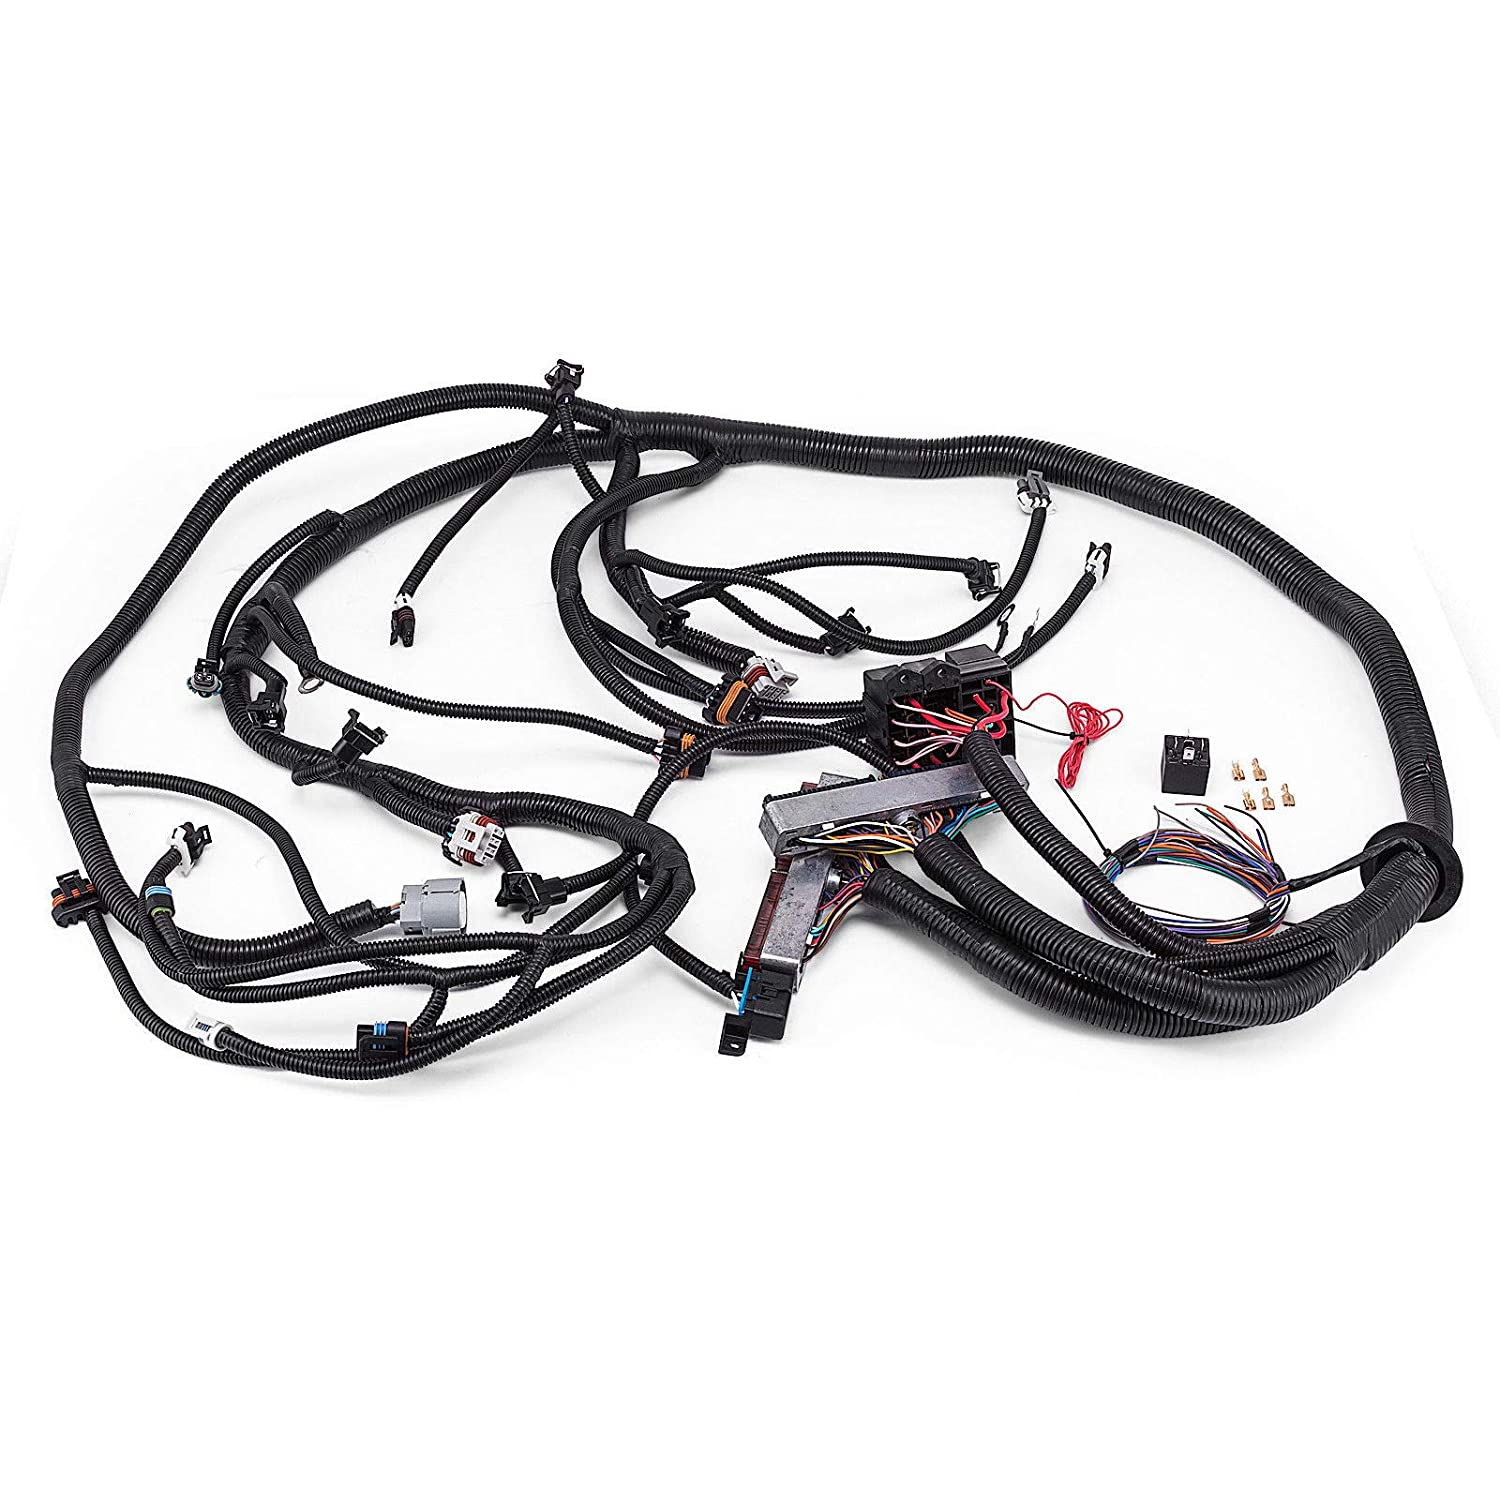 Ls6 Wiring Harness - Wiring Diagrams Entry on